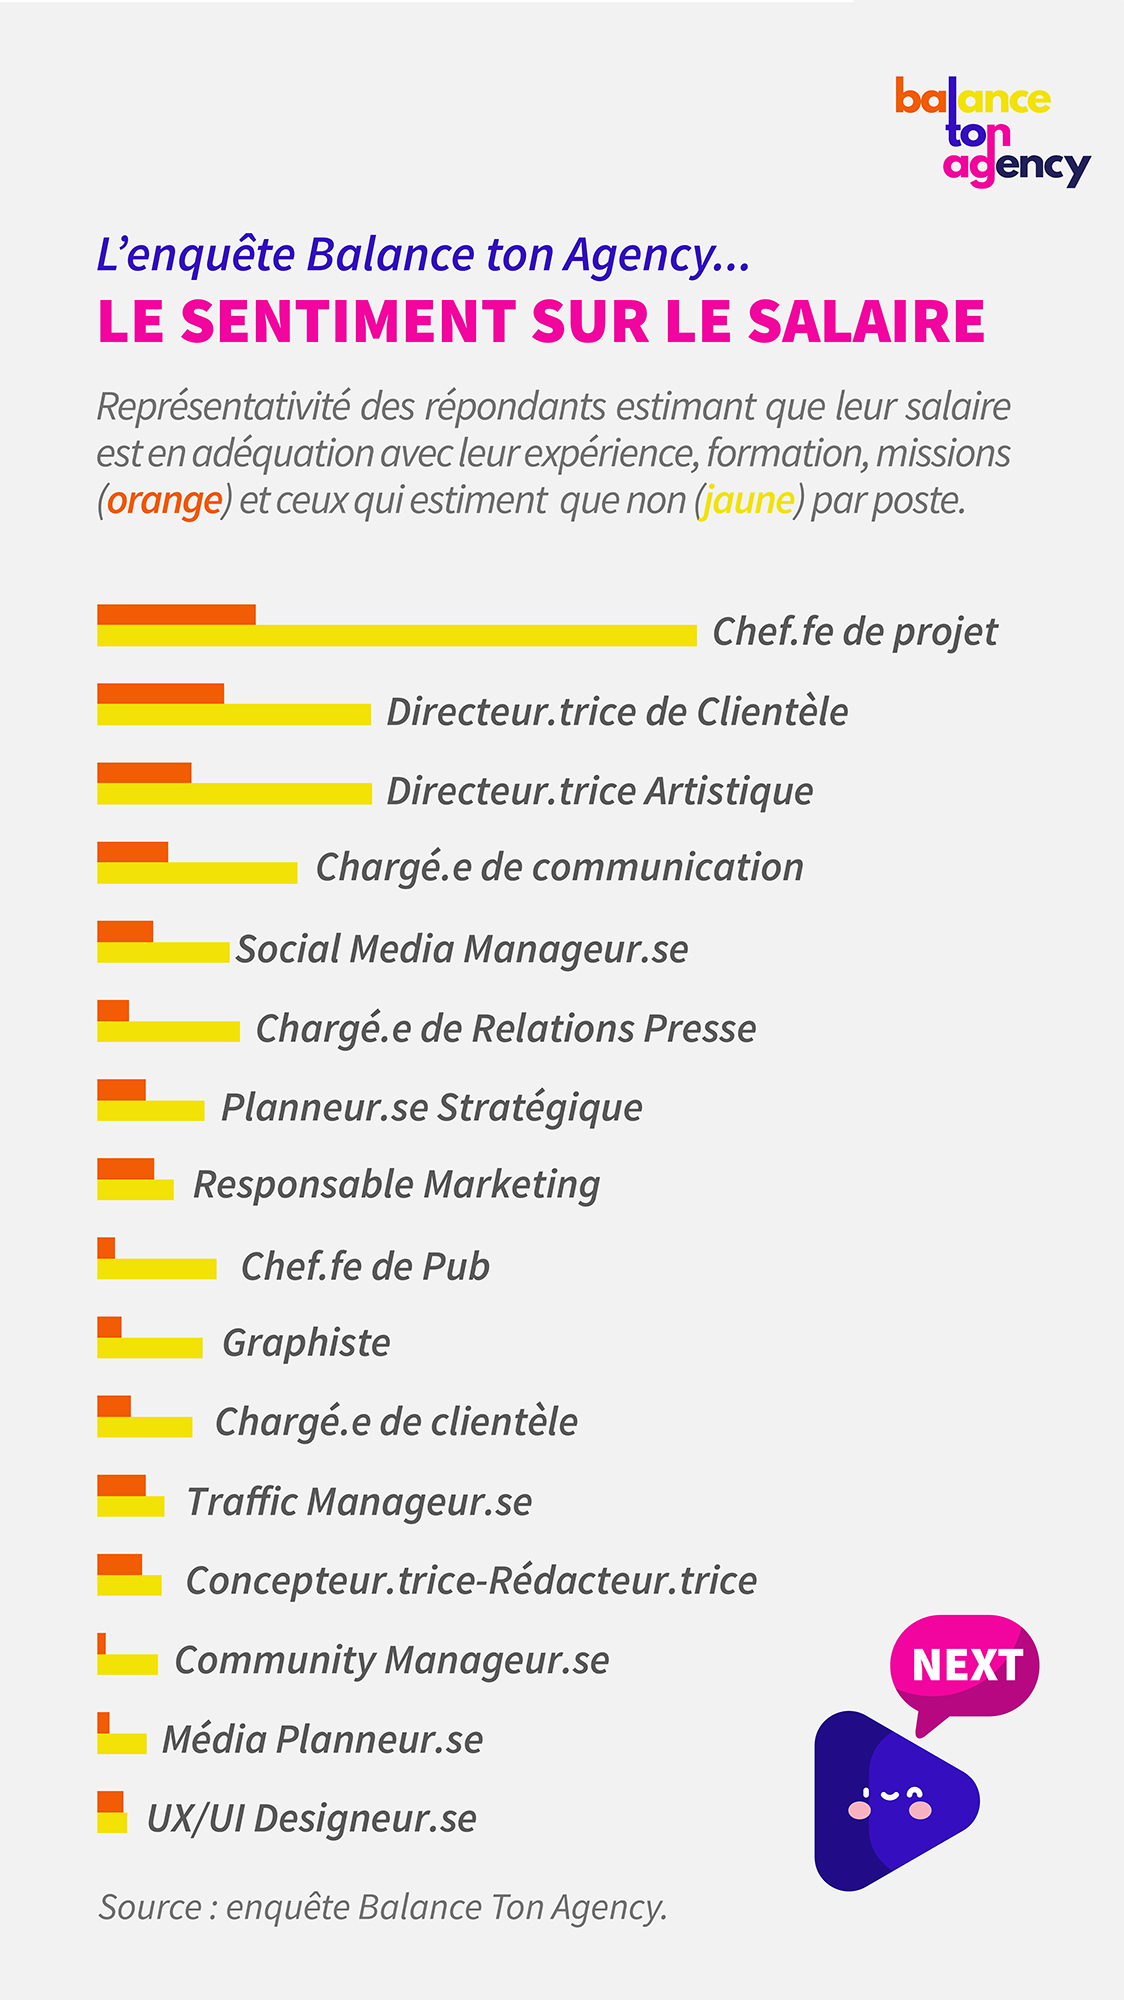 balance-ton-agency-etude-salaires-communication-metiers-sous-payes-remuneres